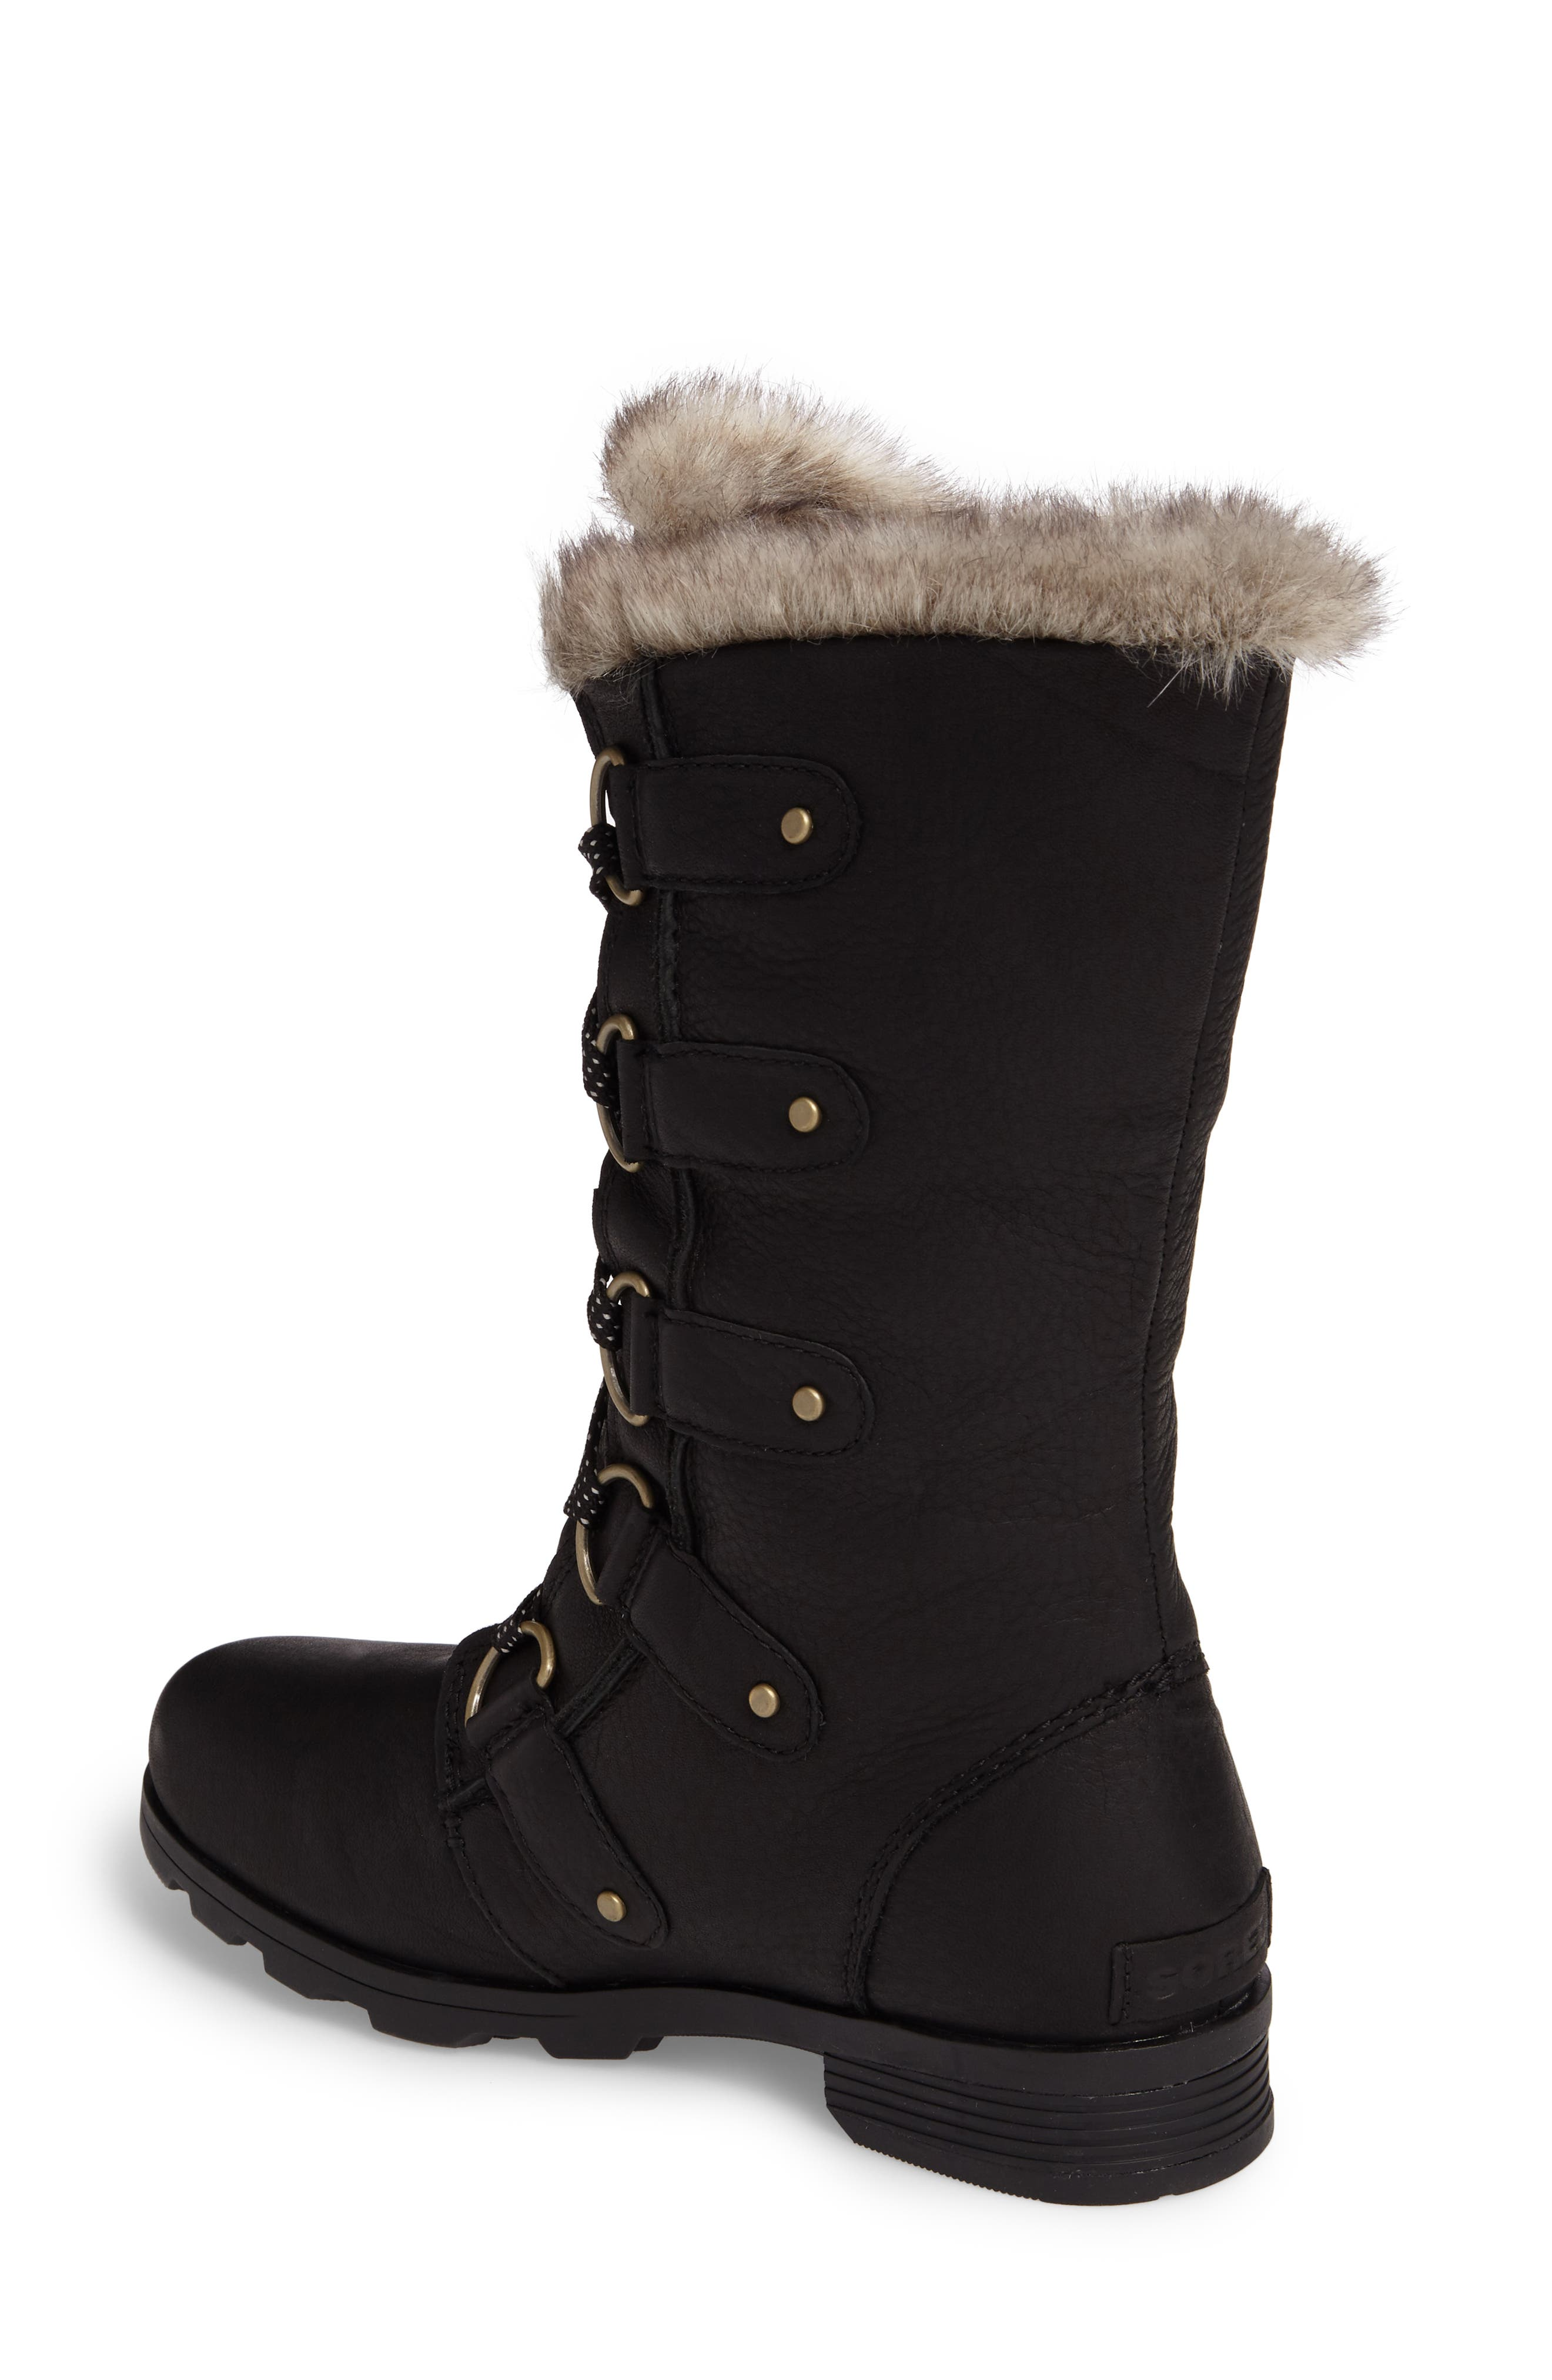 Alternate Image 2  - SOREL Emelie Waterproof Lace Up Boot with Faux Fur Trim (Women)